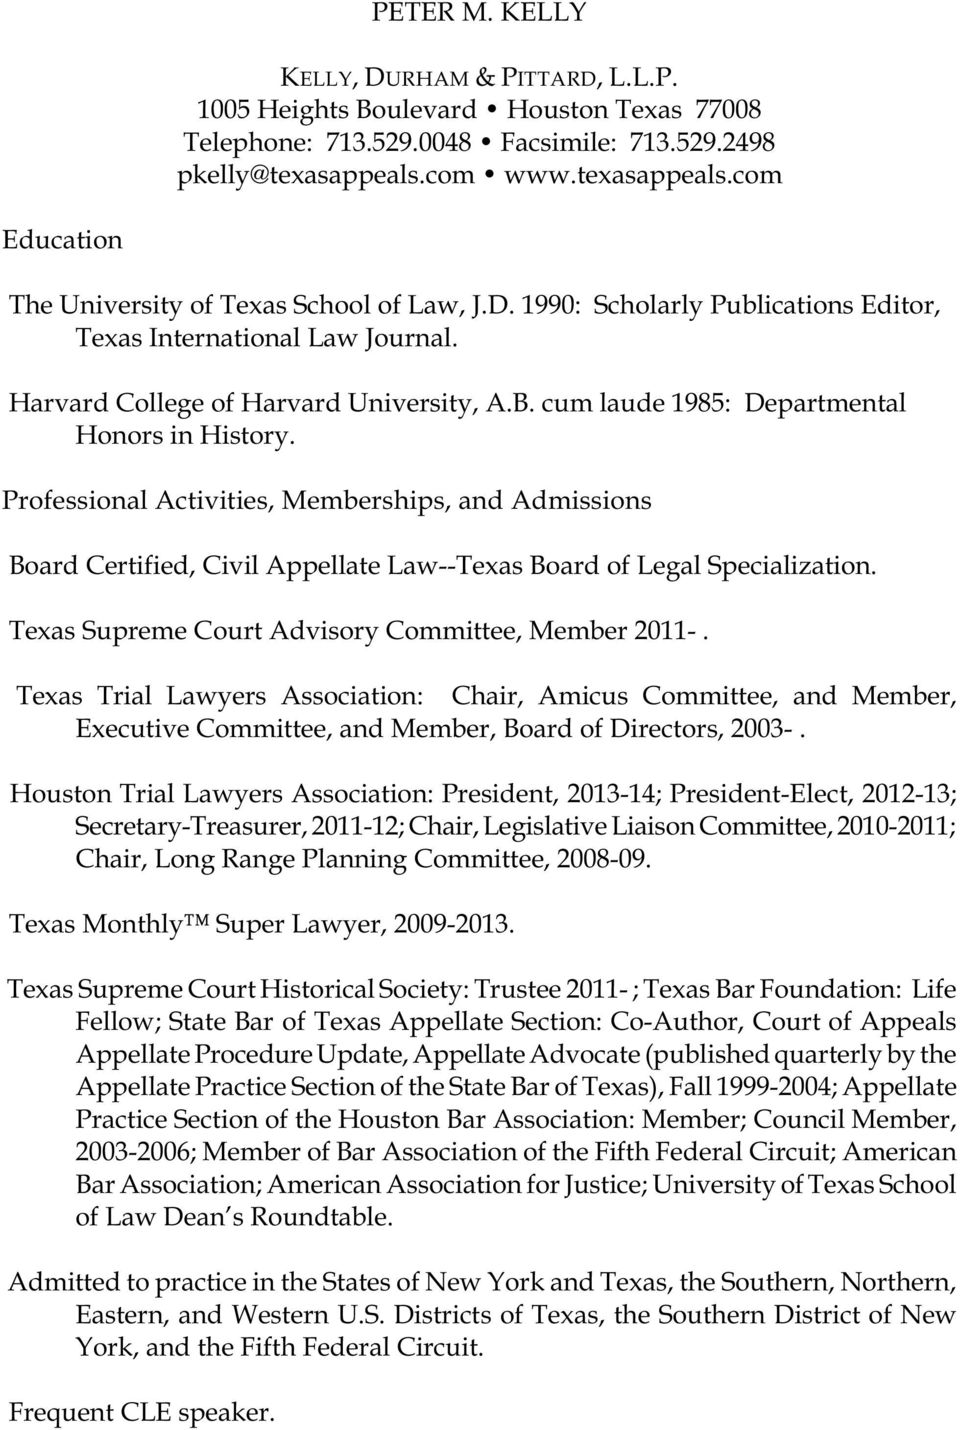 cum laude 1985: Departmental Honors in History. Professional Activities, Memberships, and Admissions Board Certified, Civil Appellate Law--Texas Board of Legal Specialization.